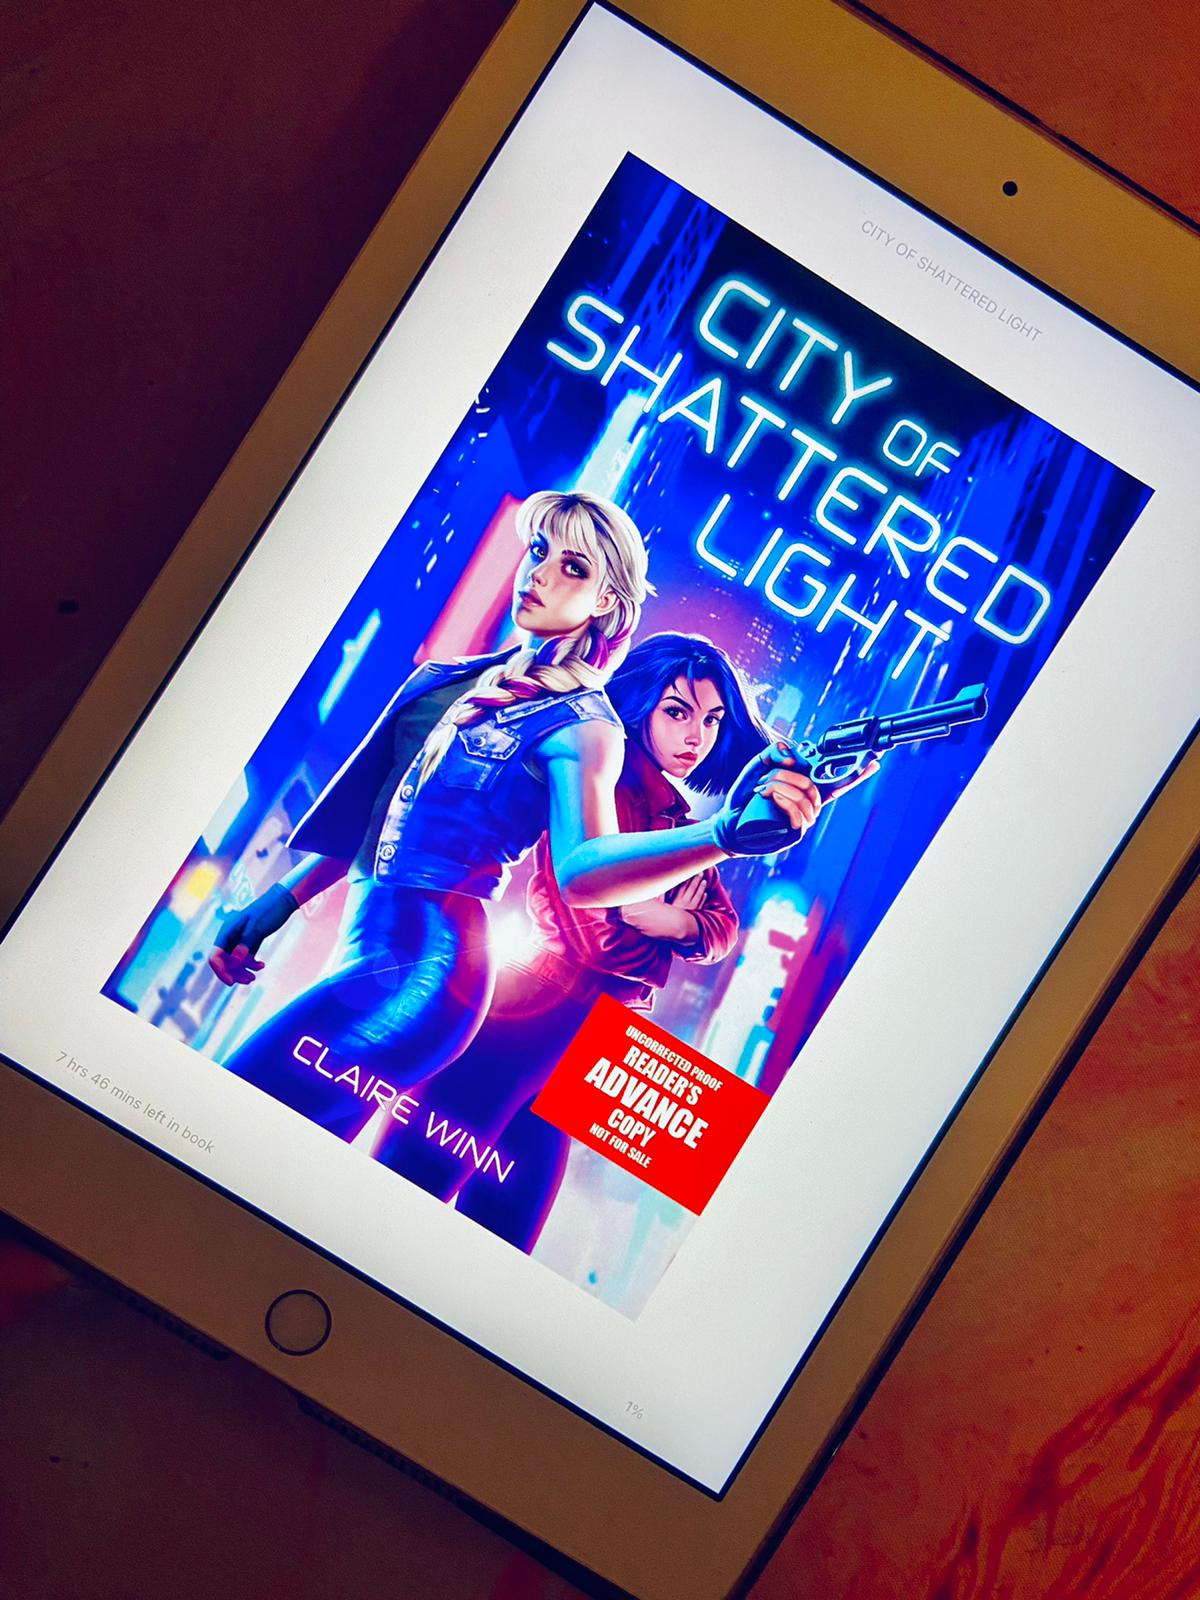 A picture of City of Shattered Light by Claire Winn